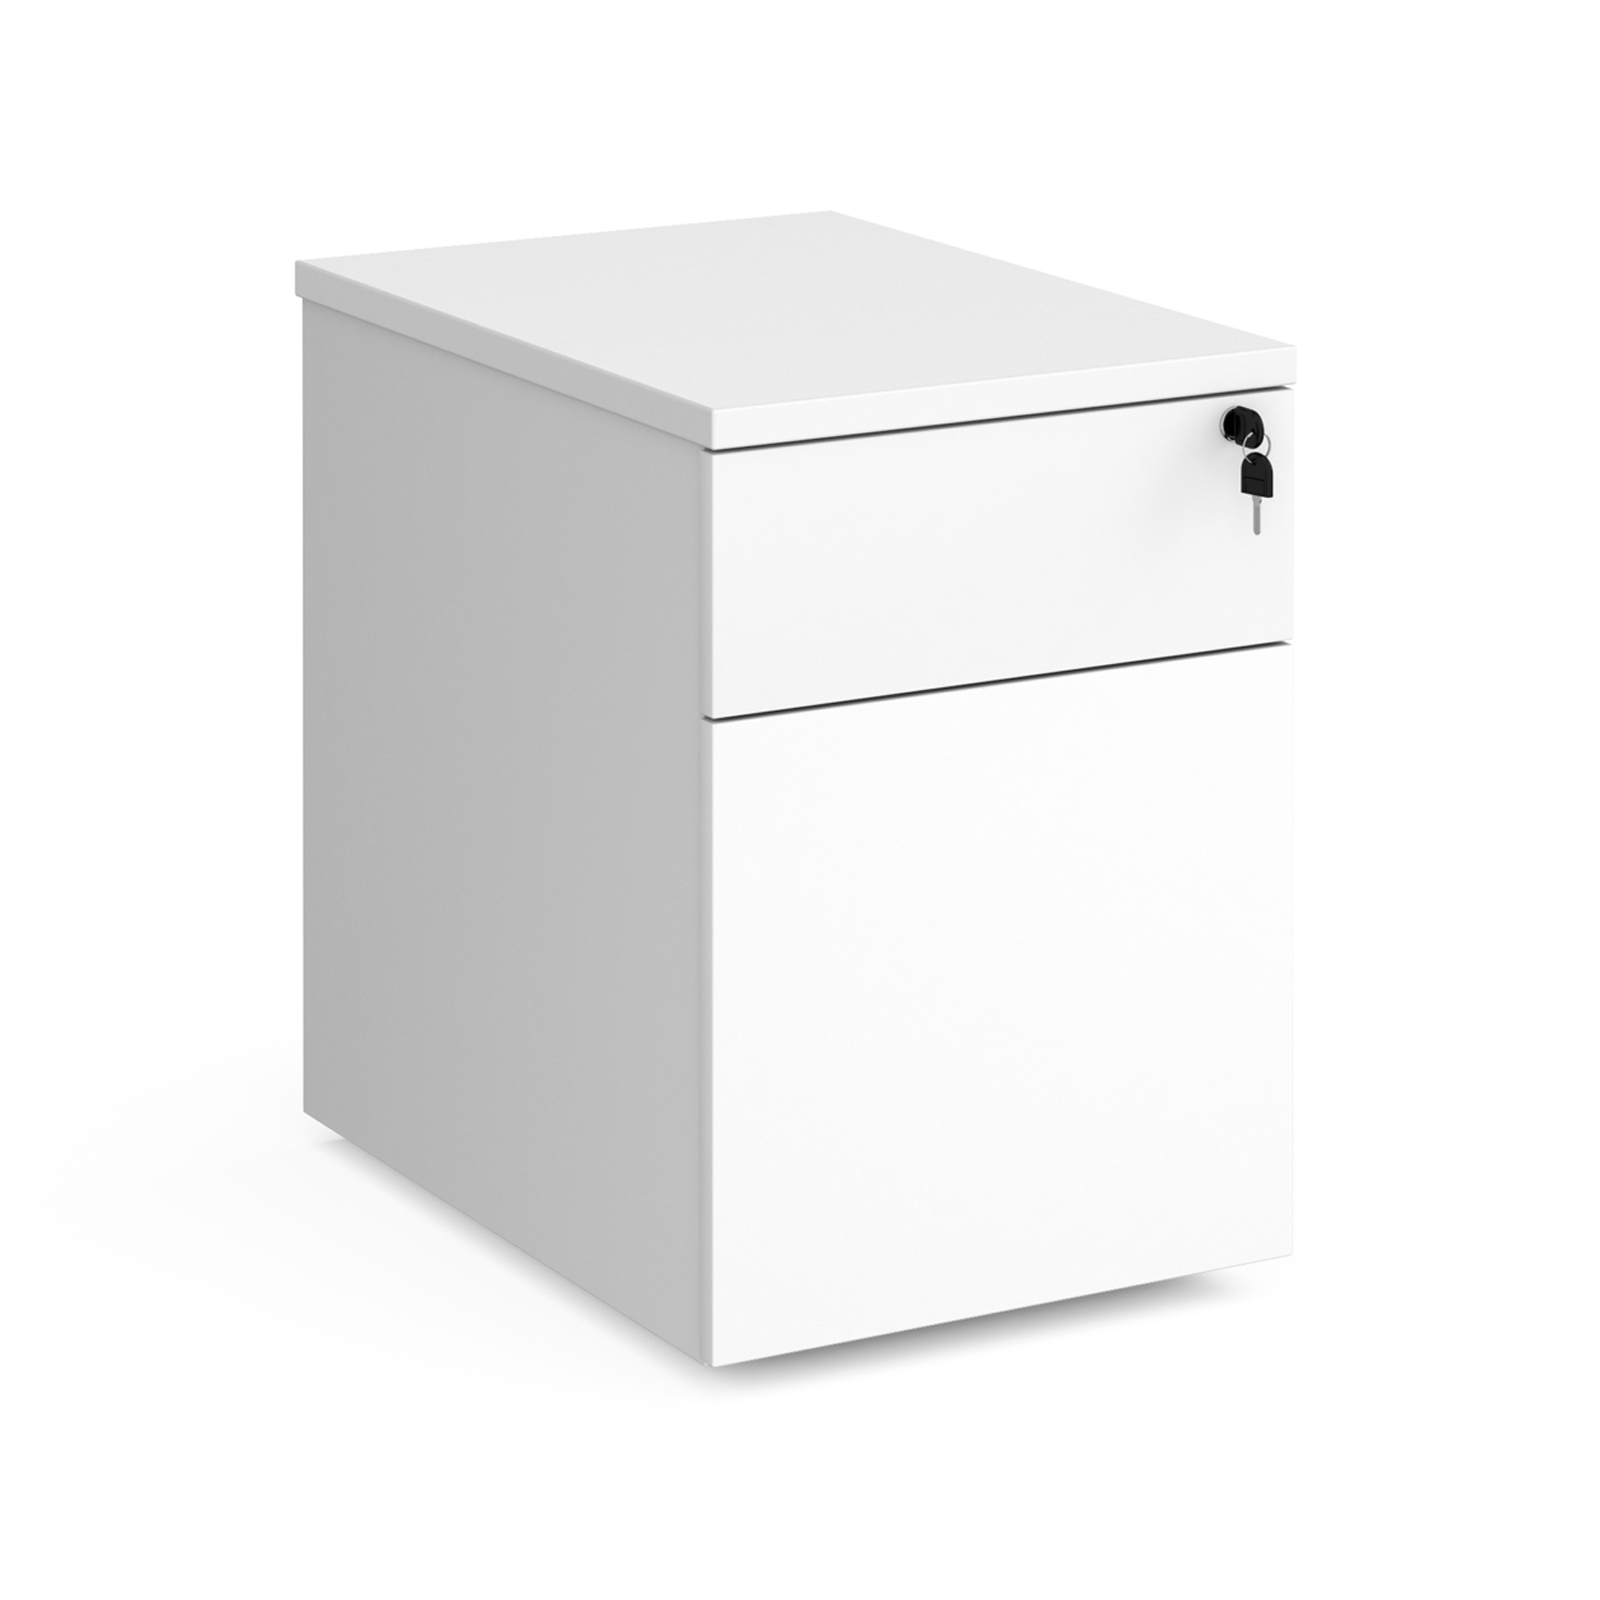 2 Drawer Duo deluxe mobile pedestal